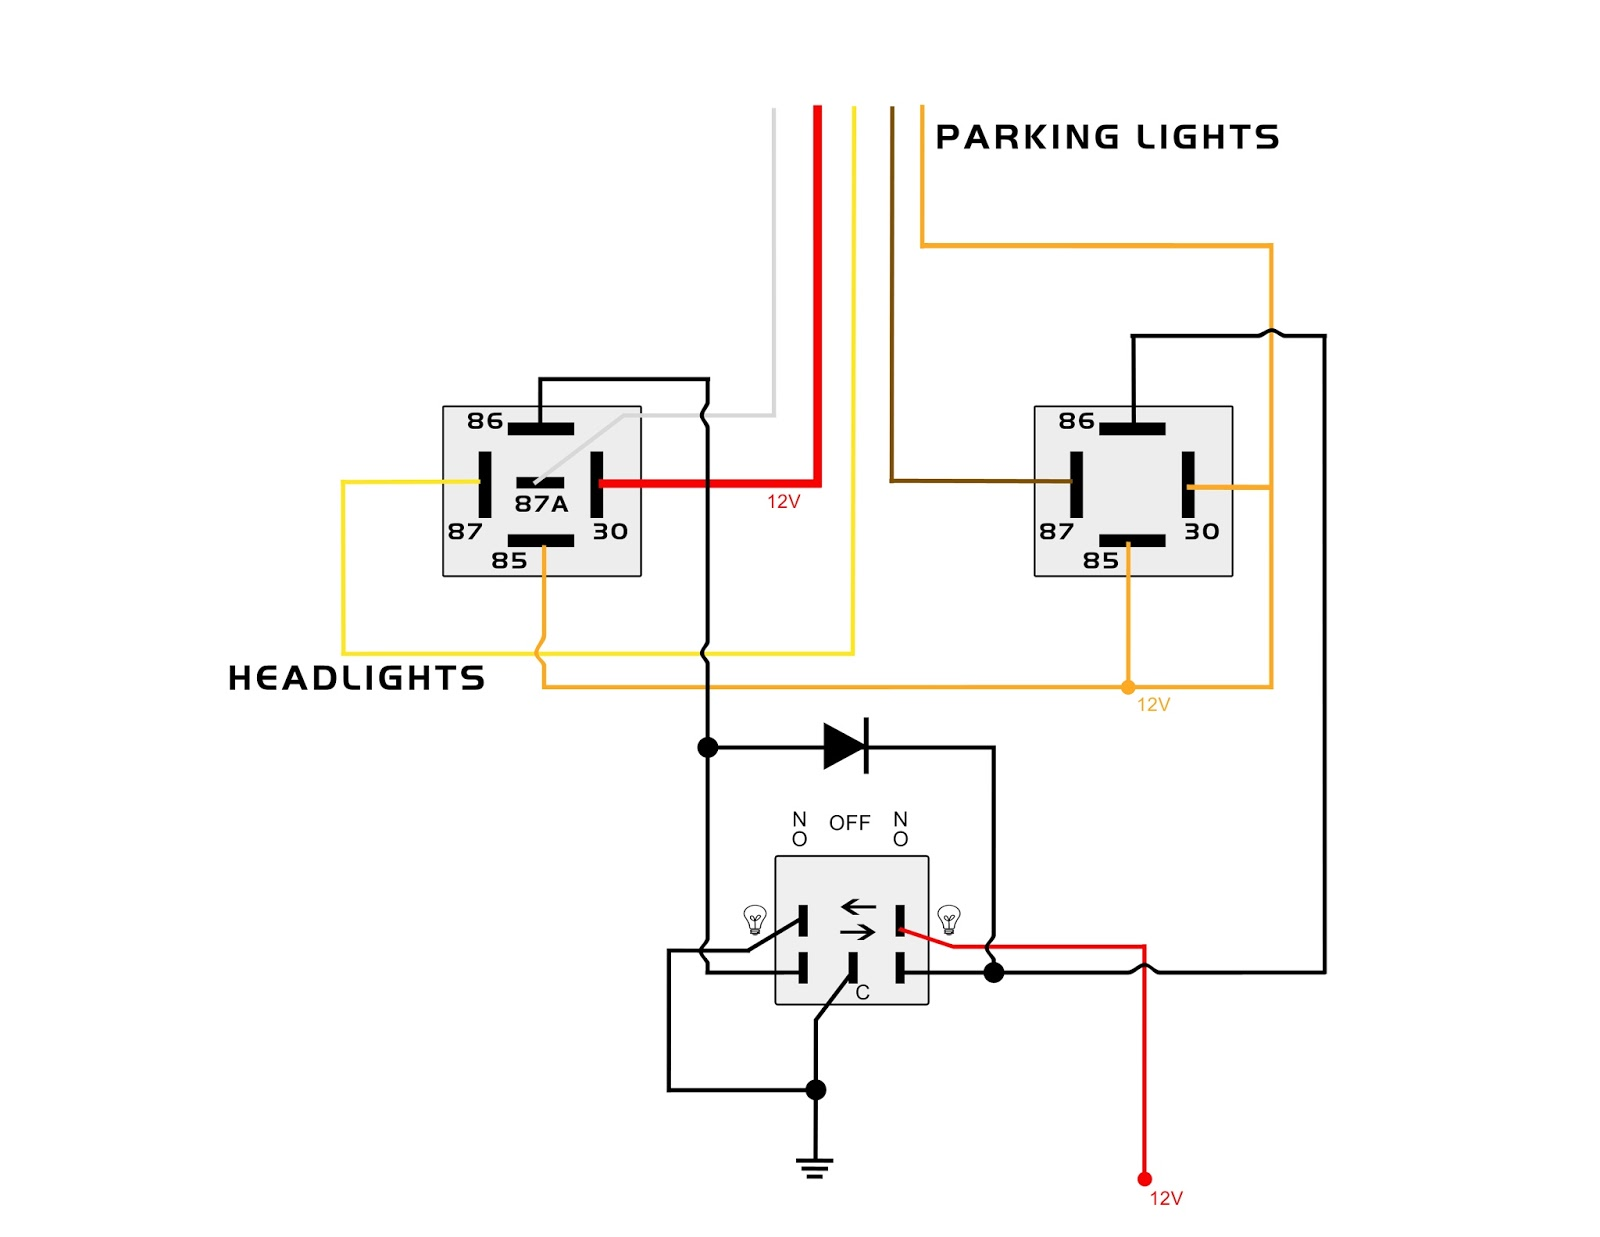 hight resolution of if you are working on your lower console wiring and need to wire one of your switches to activate the parking and headlights this hand diagram will